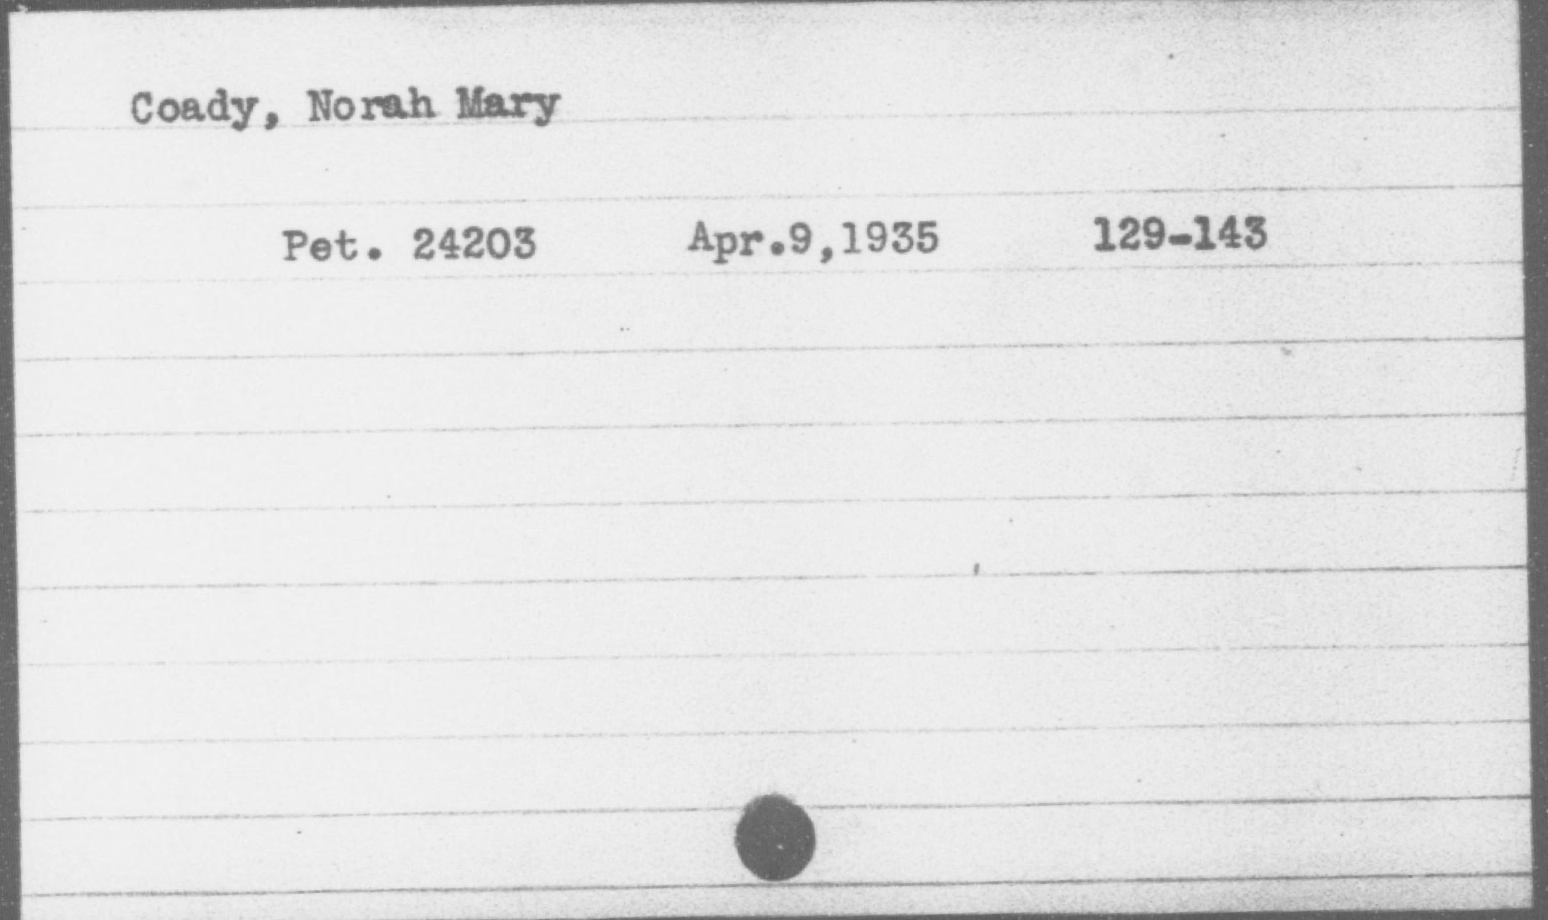 Coady, Norah Mary, Year: 1935